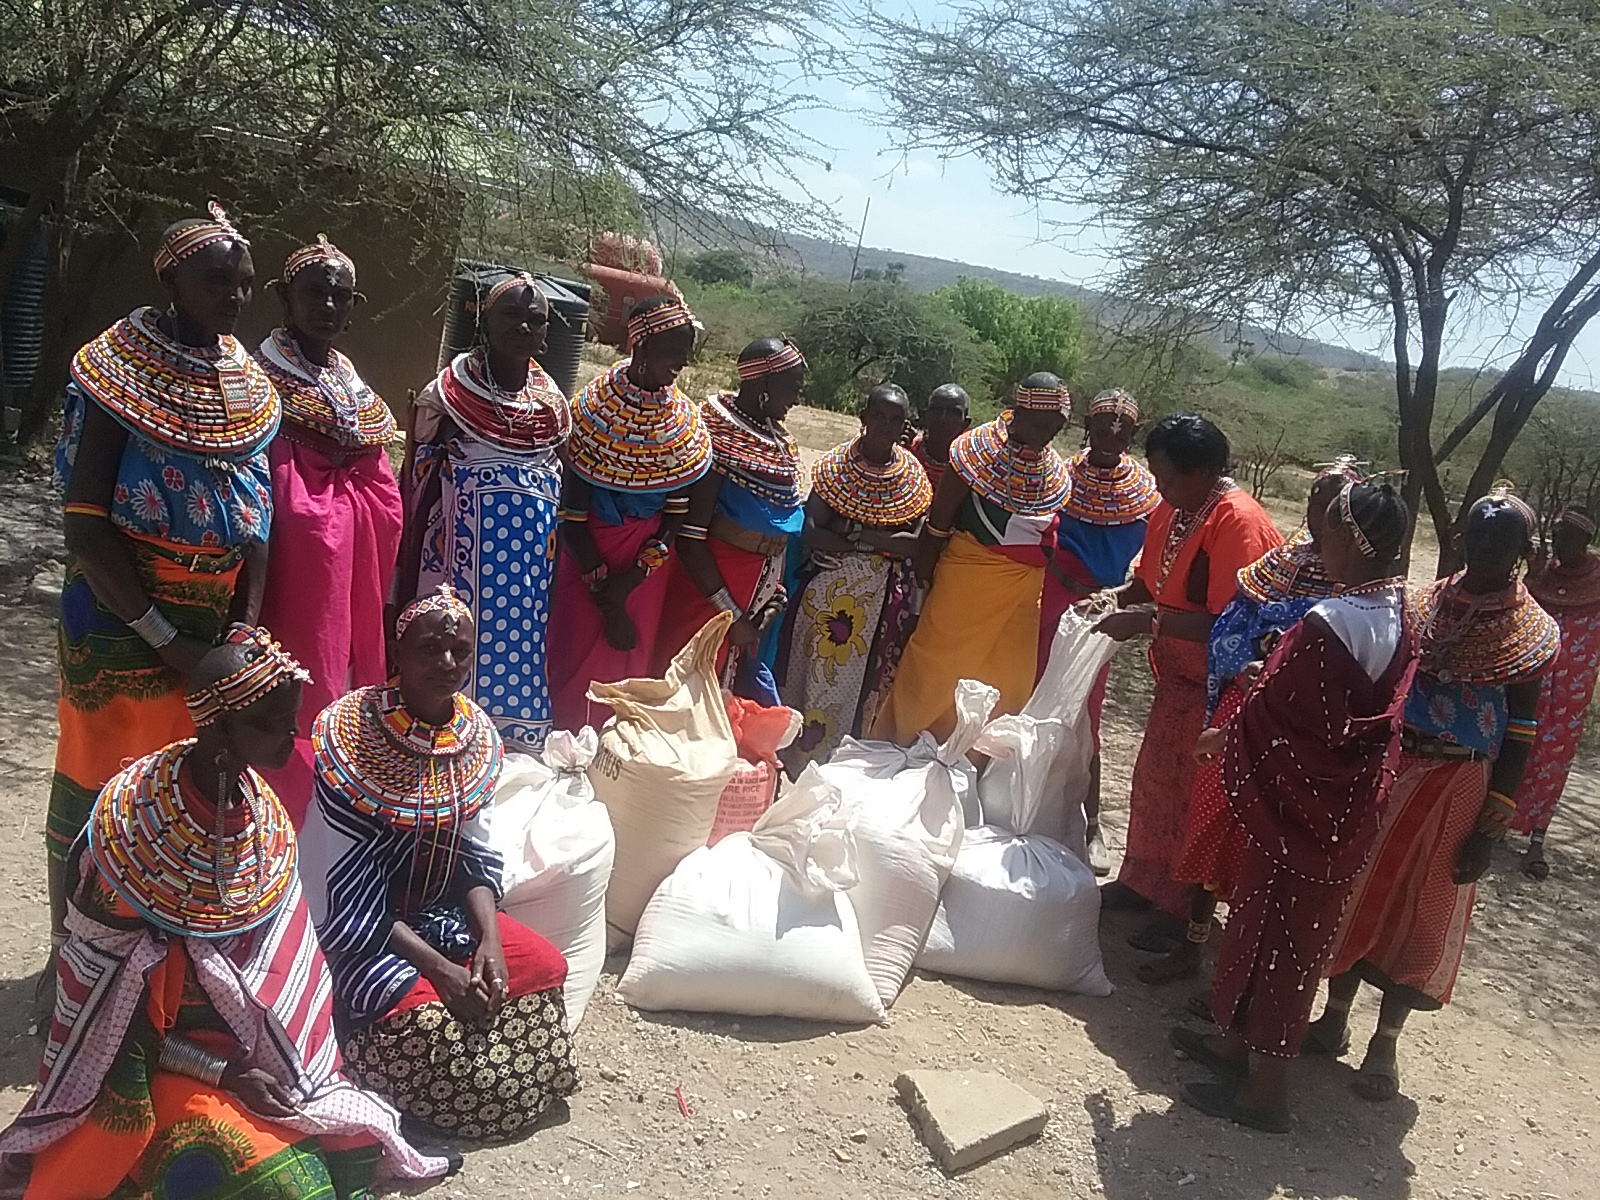 http://indigenouswomen-africa.org/wp-content/uploads/2018/01/food-distribution.jpg